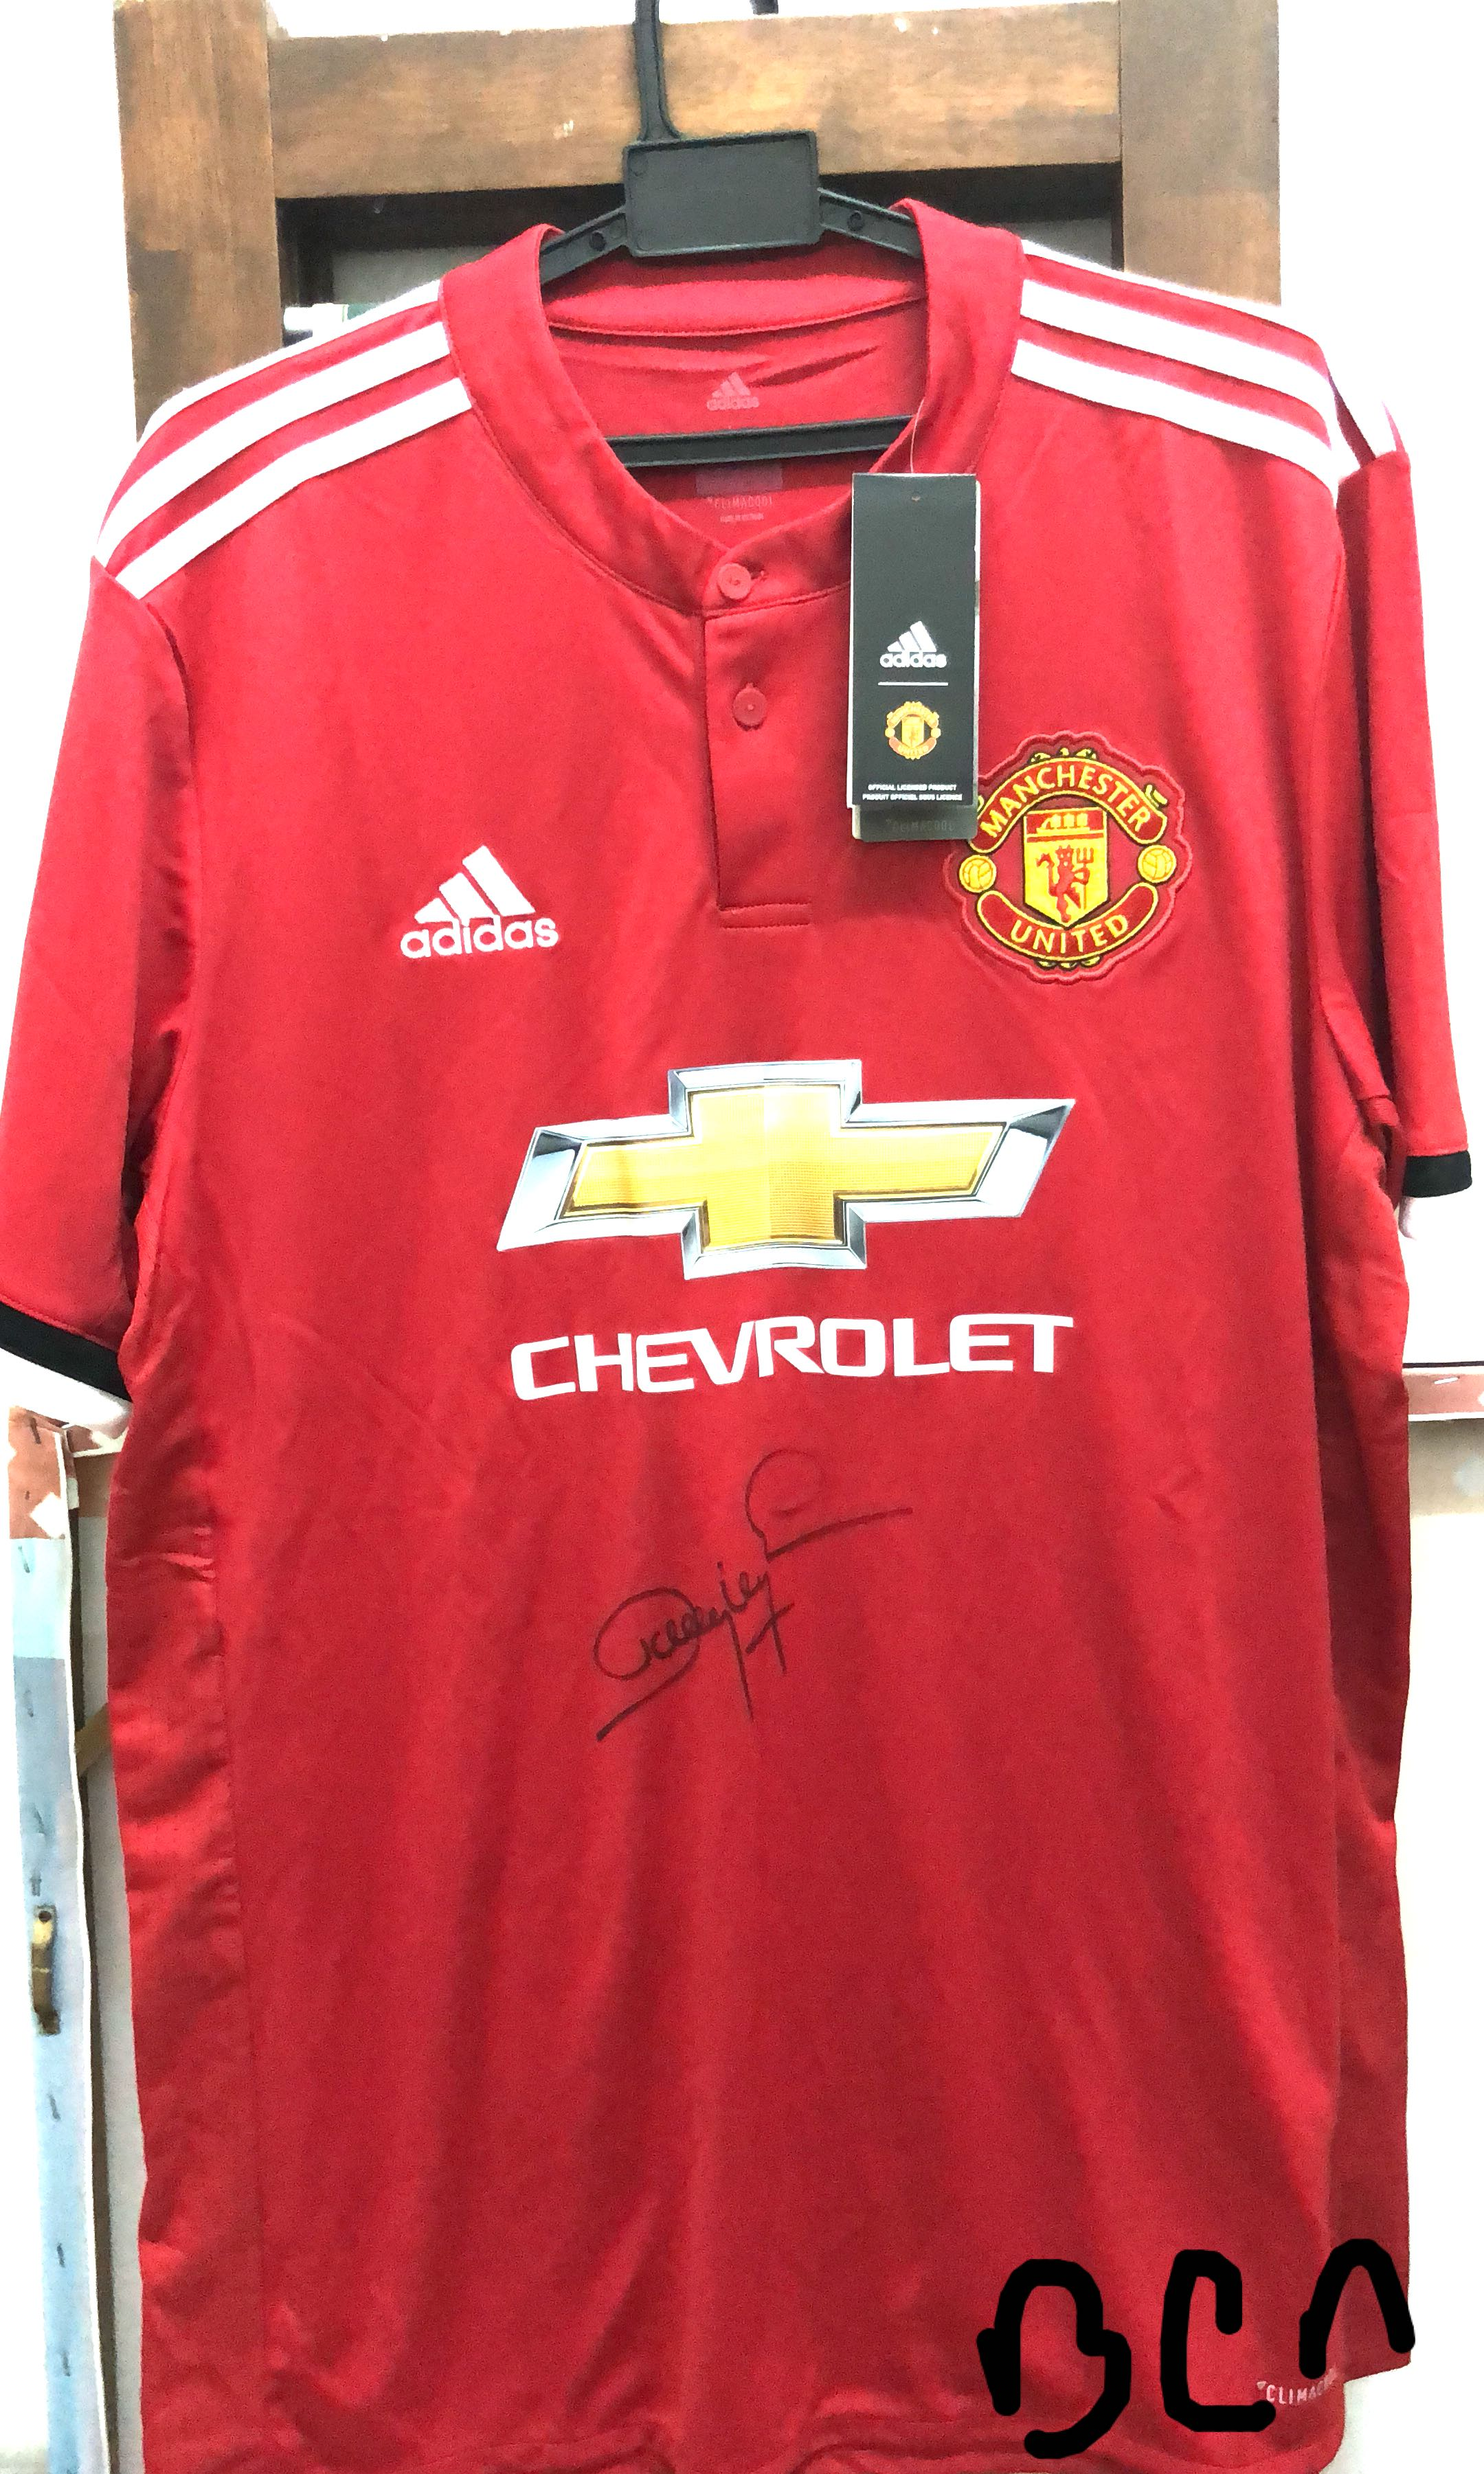 dfb9c2fd84d Manchester United 2017 18 Home Jersey with Dwight Yorke Signature ...